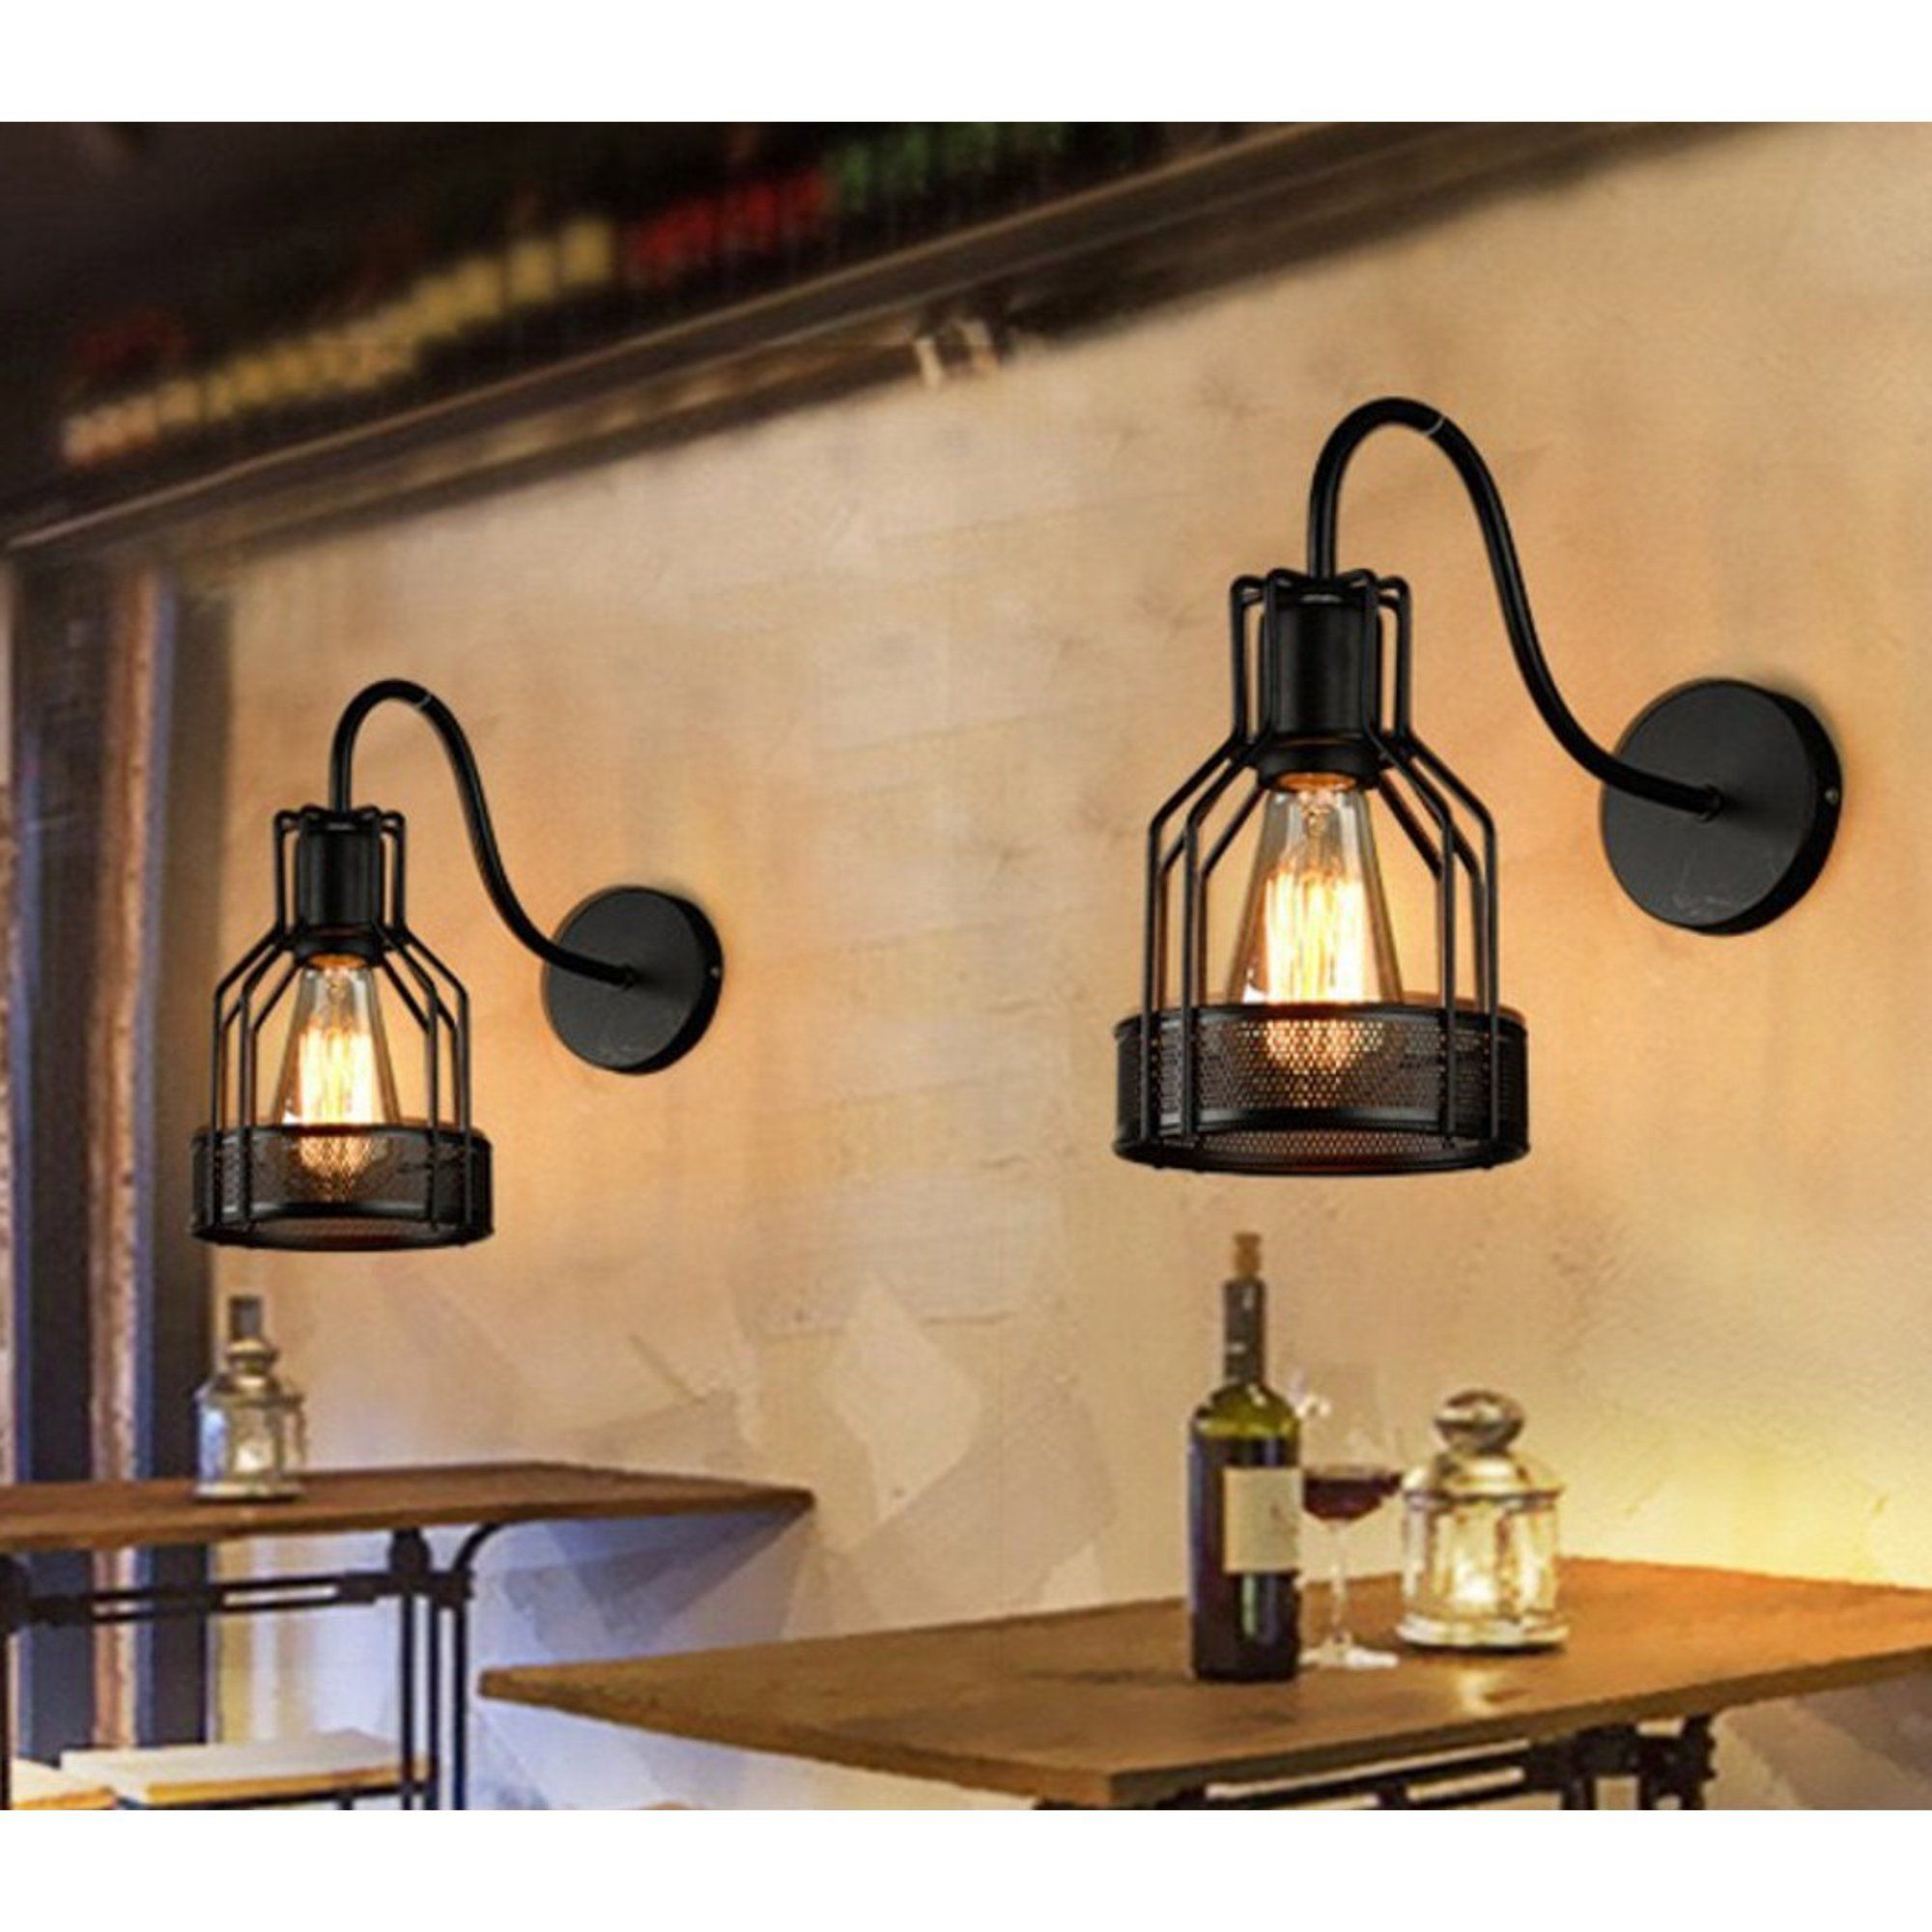 Retro Black Wall Sconce Lighting Gooseneck Barn Flat Lights Industrial Vintage Farmhouse Wall Lamp Outside Led Light Fixtures Set Of Two Hardwired Walmart Com In 2021 Wall Sconces Living Room Farmhouse